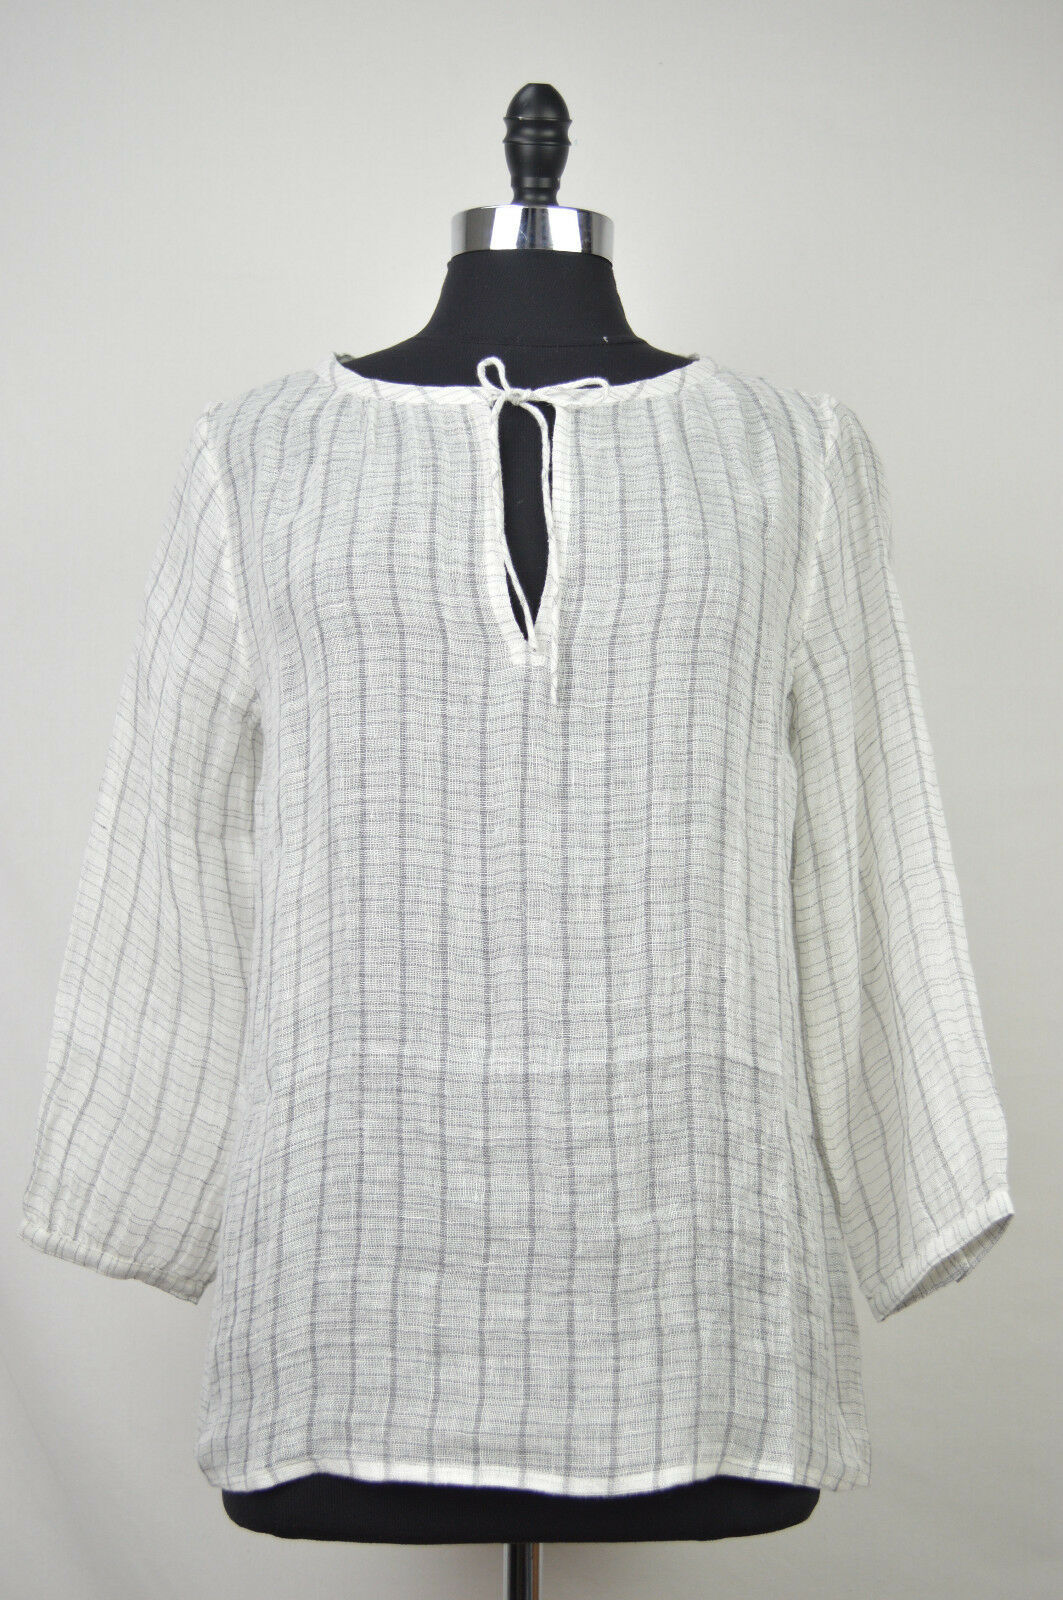 Primary image for [41 85] EILEEN FISHER NWT WHITE STRIPED WIDE NECK BOXY TOP LINEN BLOUSE XS $198